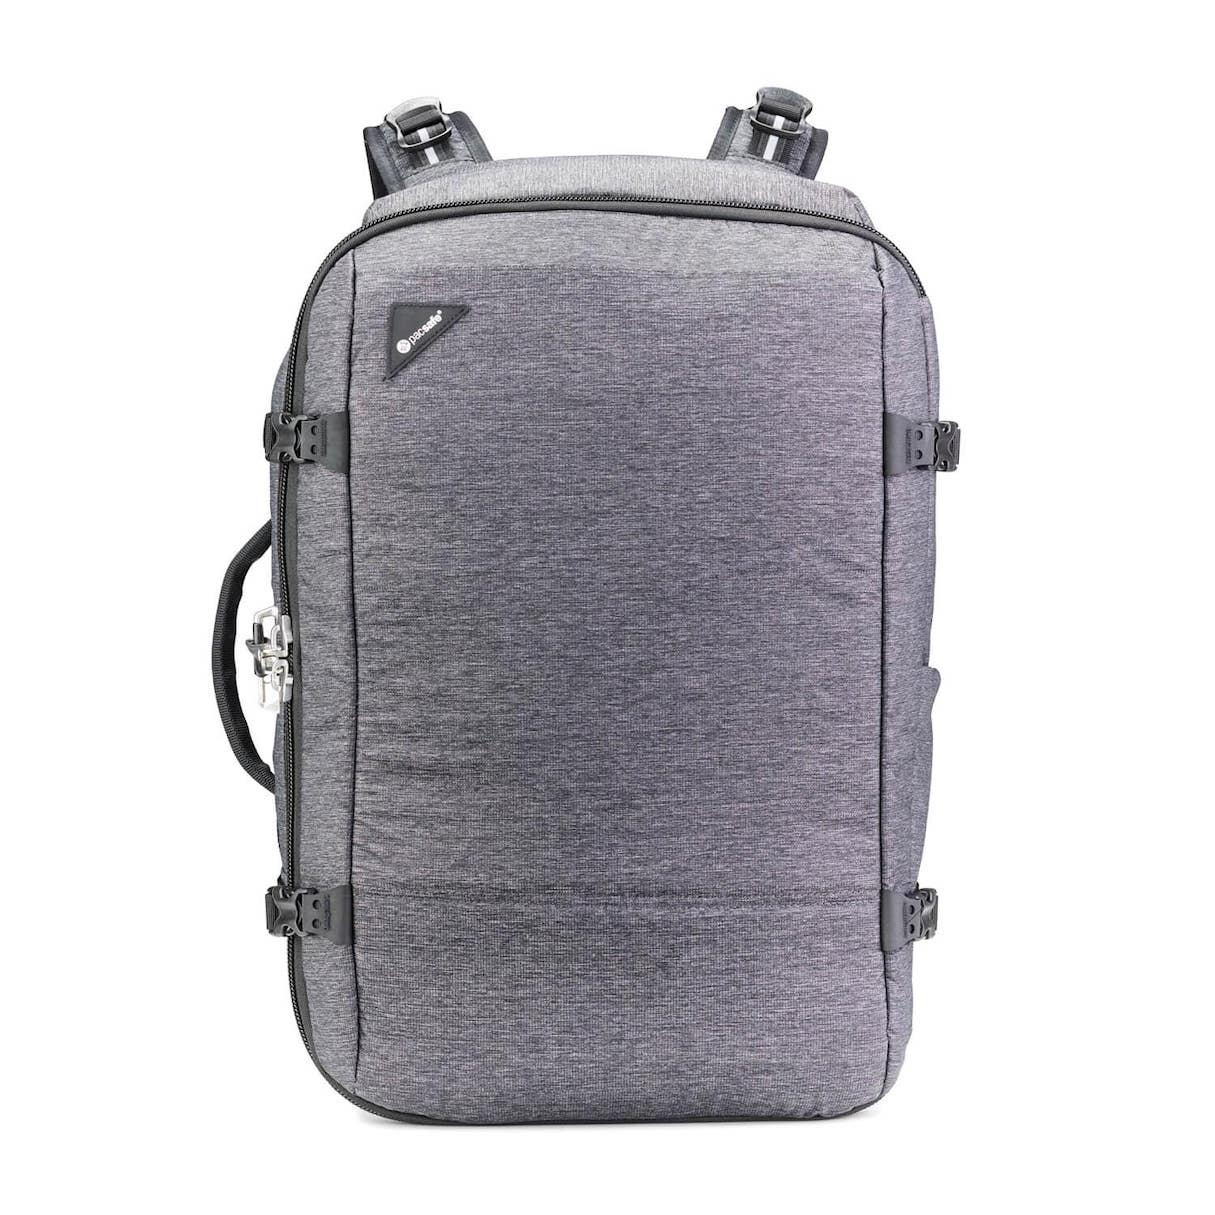 gifts for programmers: backpack